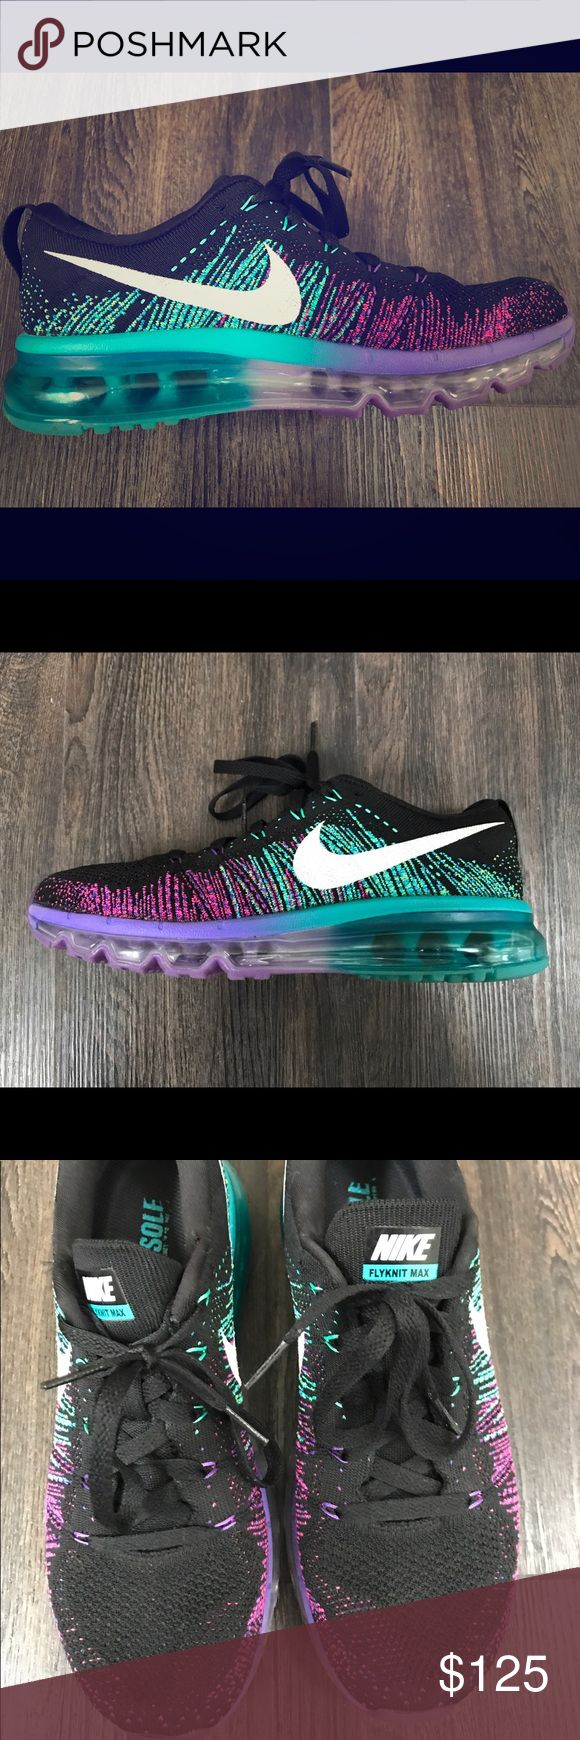 Nike Flyknit Max shoes These shoes are adorable. They are black with bright green, purple and pink accents. They are very cushiony and great for the gym or just to wear around town. I've only worn them a couple of times but received compliments every time. I purchased them for $200 several years ago. You will love them! Nike Shoes Athletic Shoes